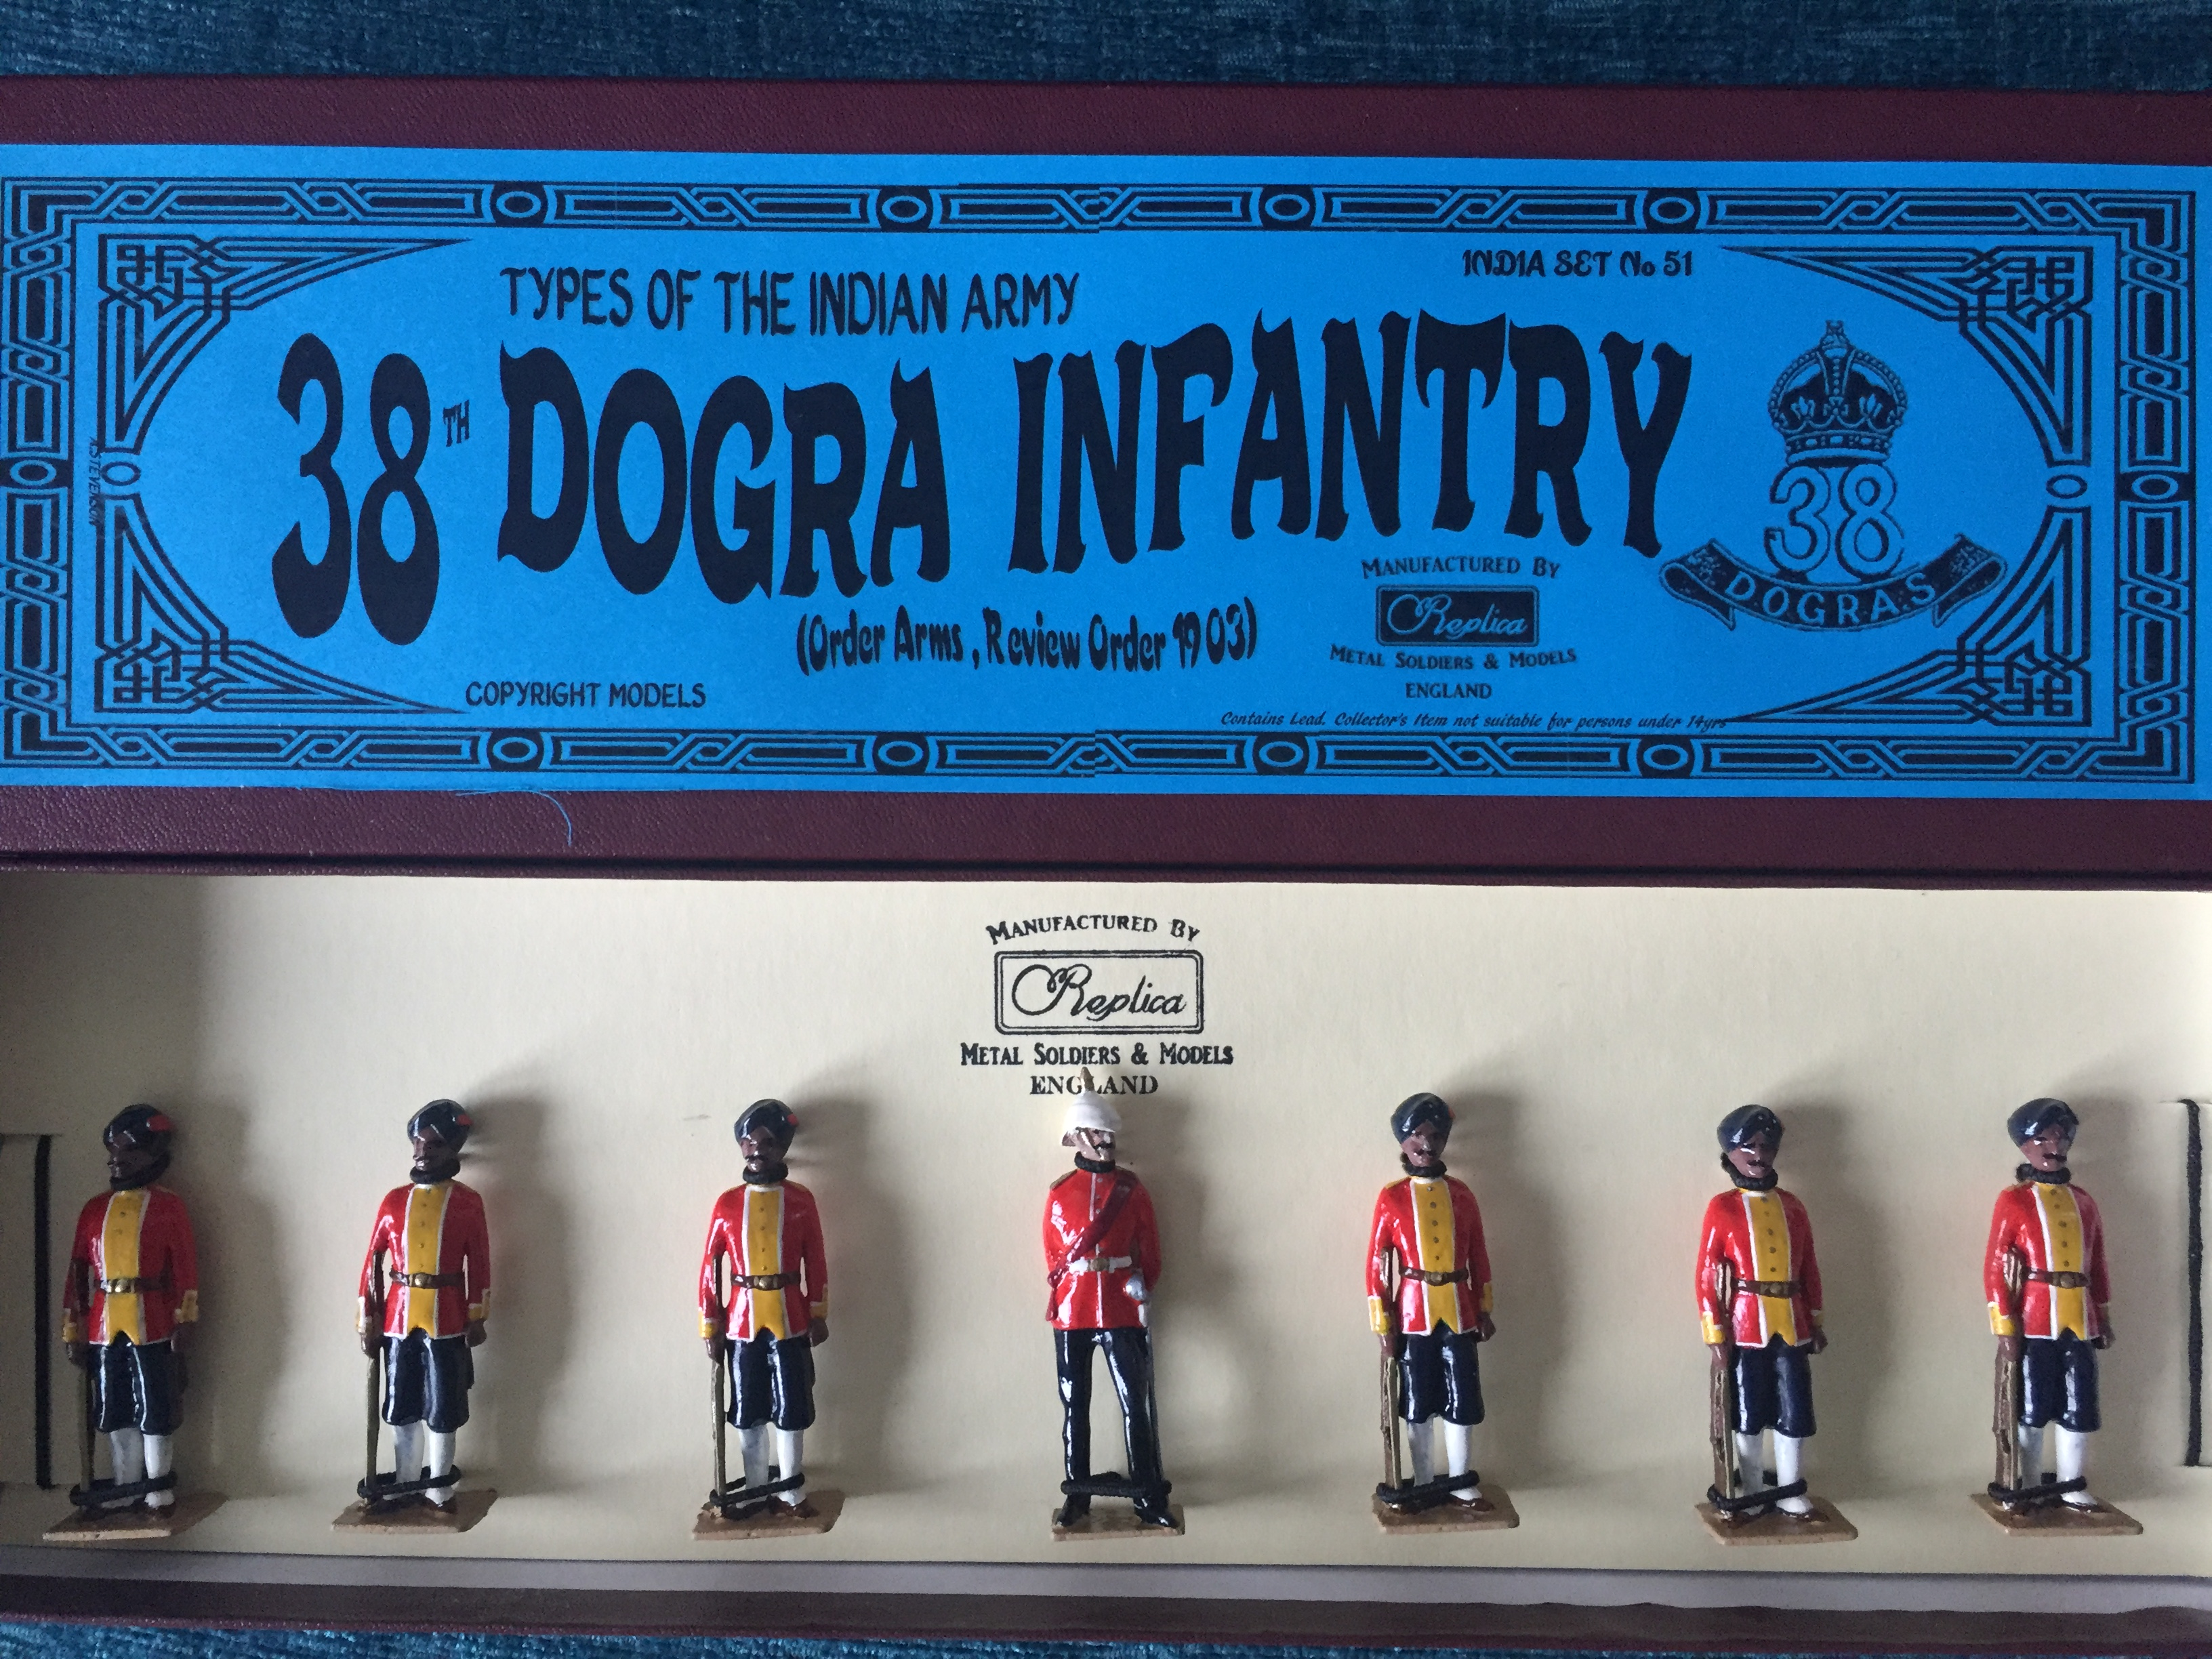 38th Dogra Infantry